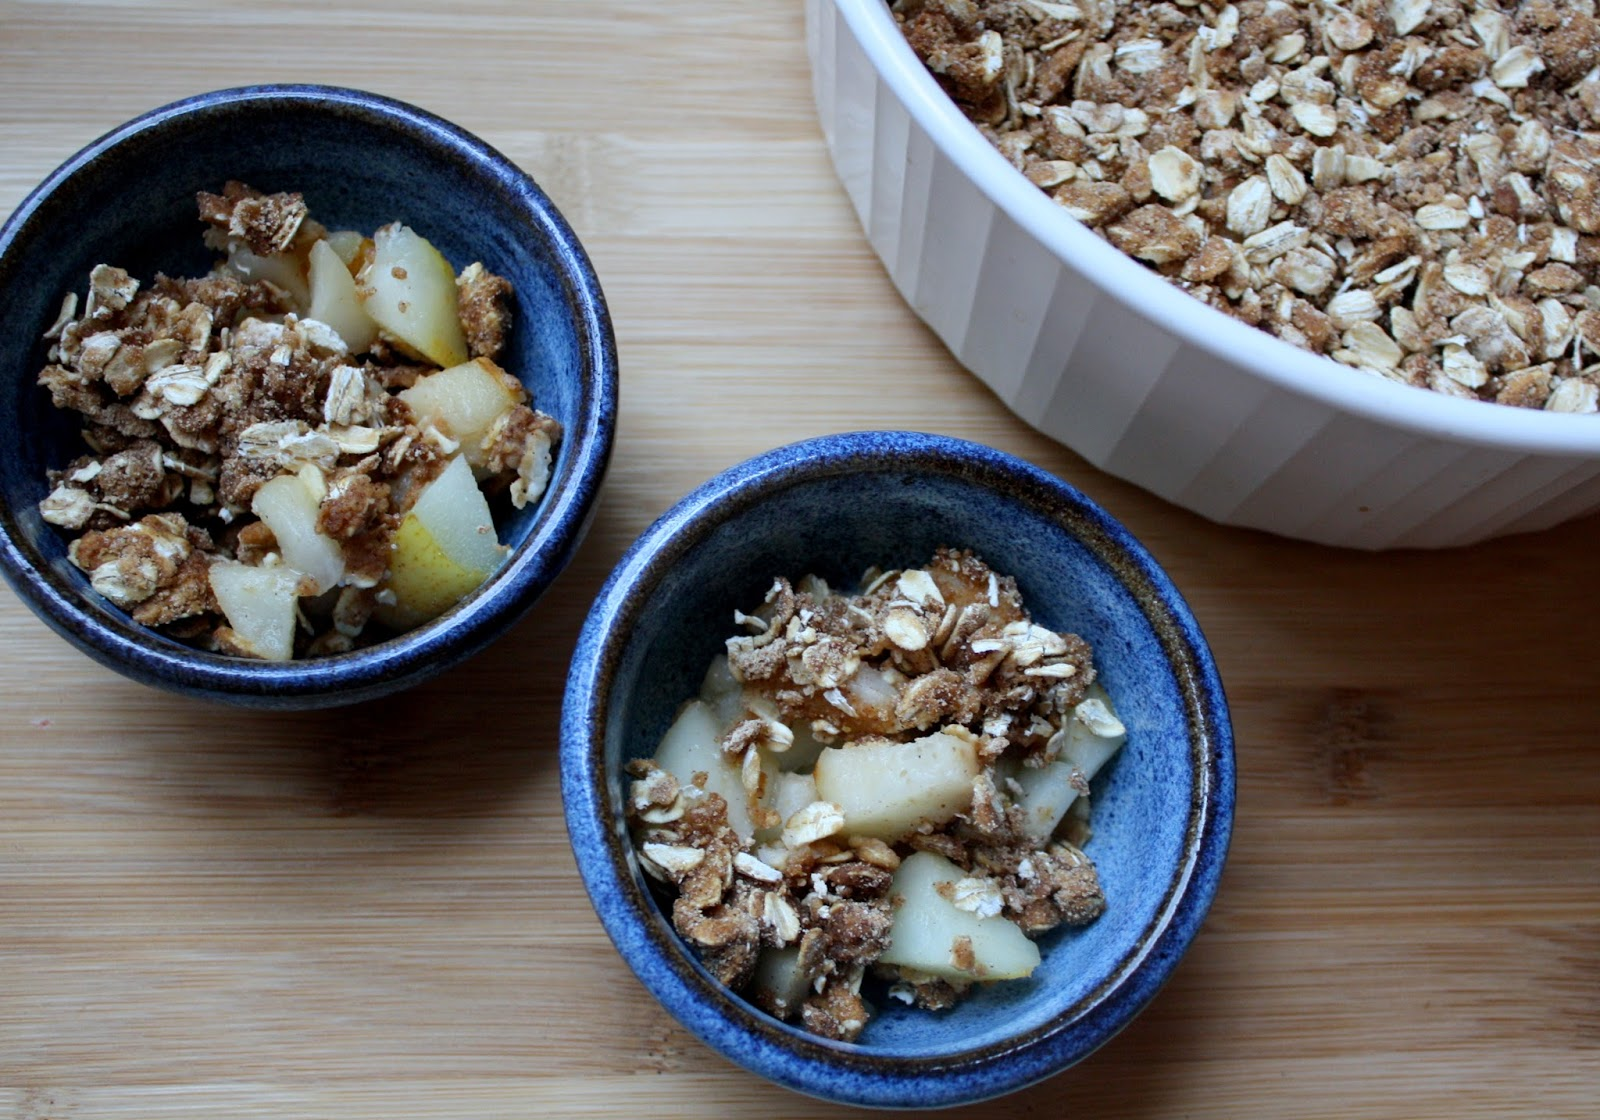 Gingerbread Pear Crumble AKA Gruffalo Crumble from The Gruffalo